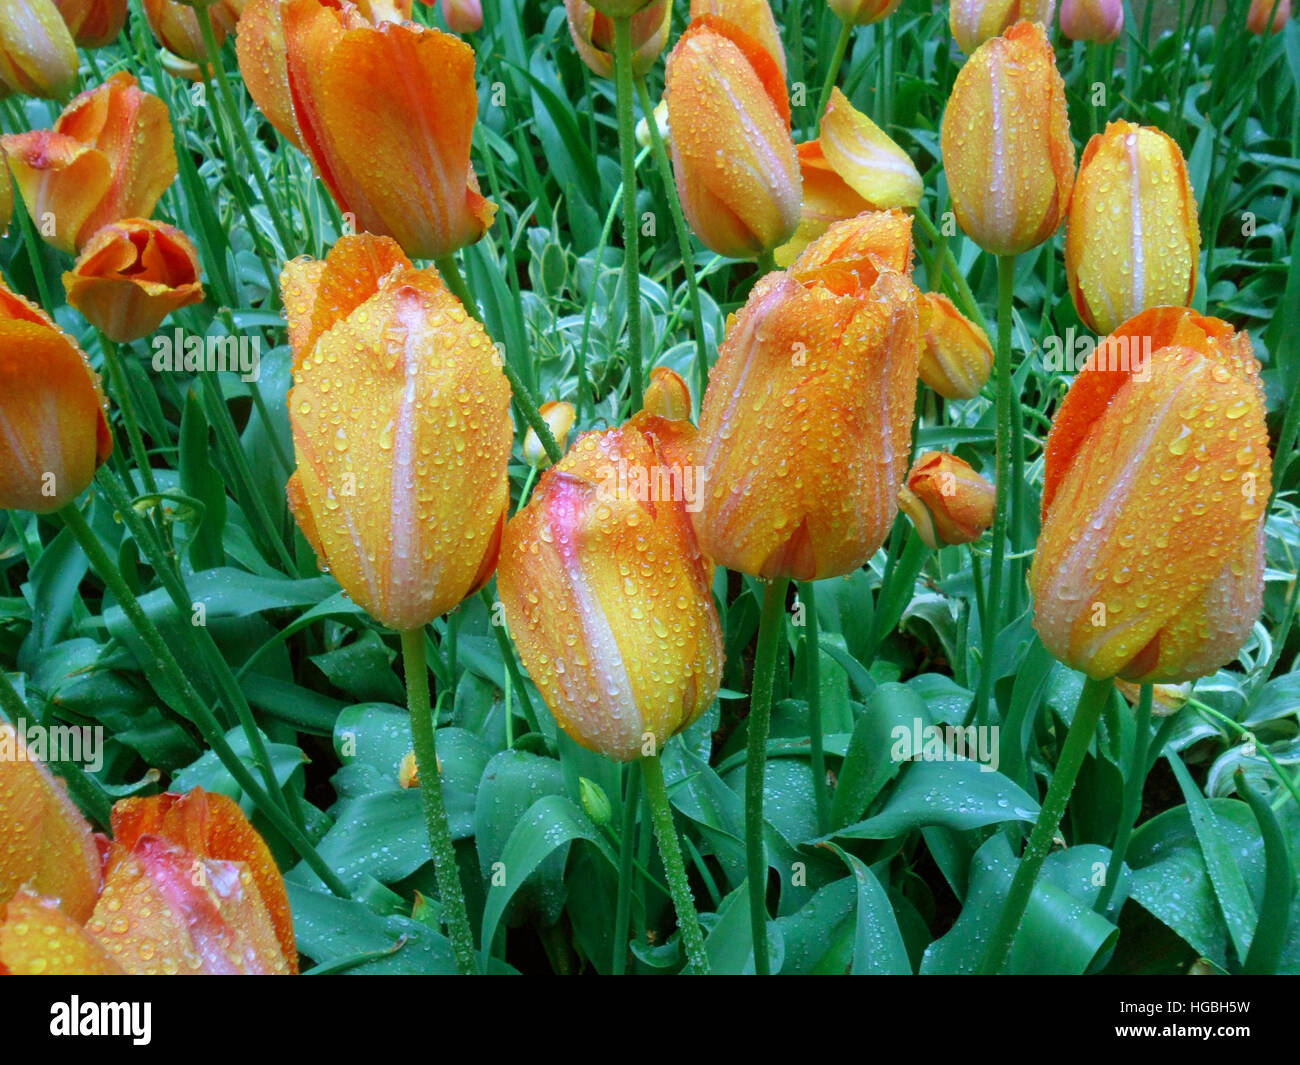 Bunch of Blooming Orange and Yellow Two-Tone Tulips with Raindrops - Stock Image